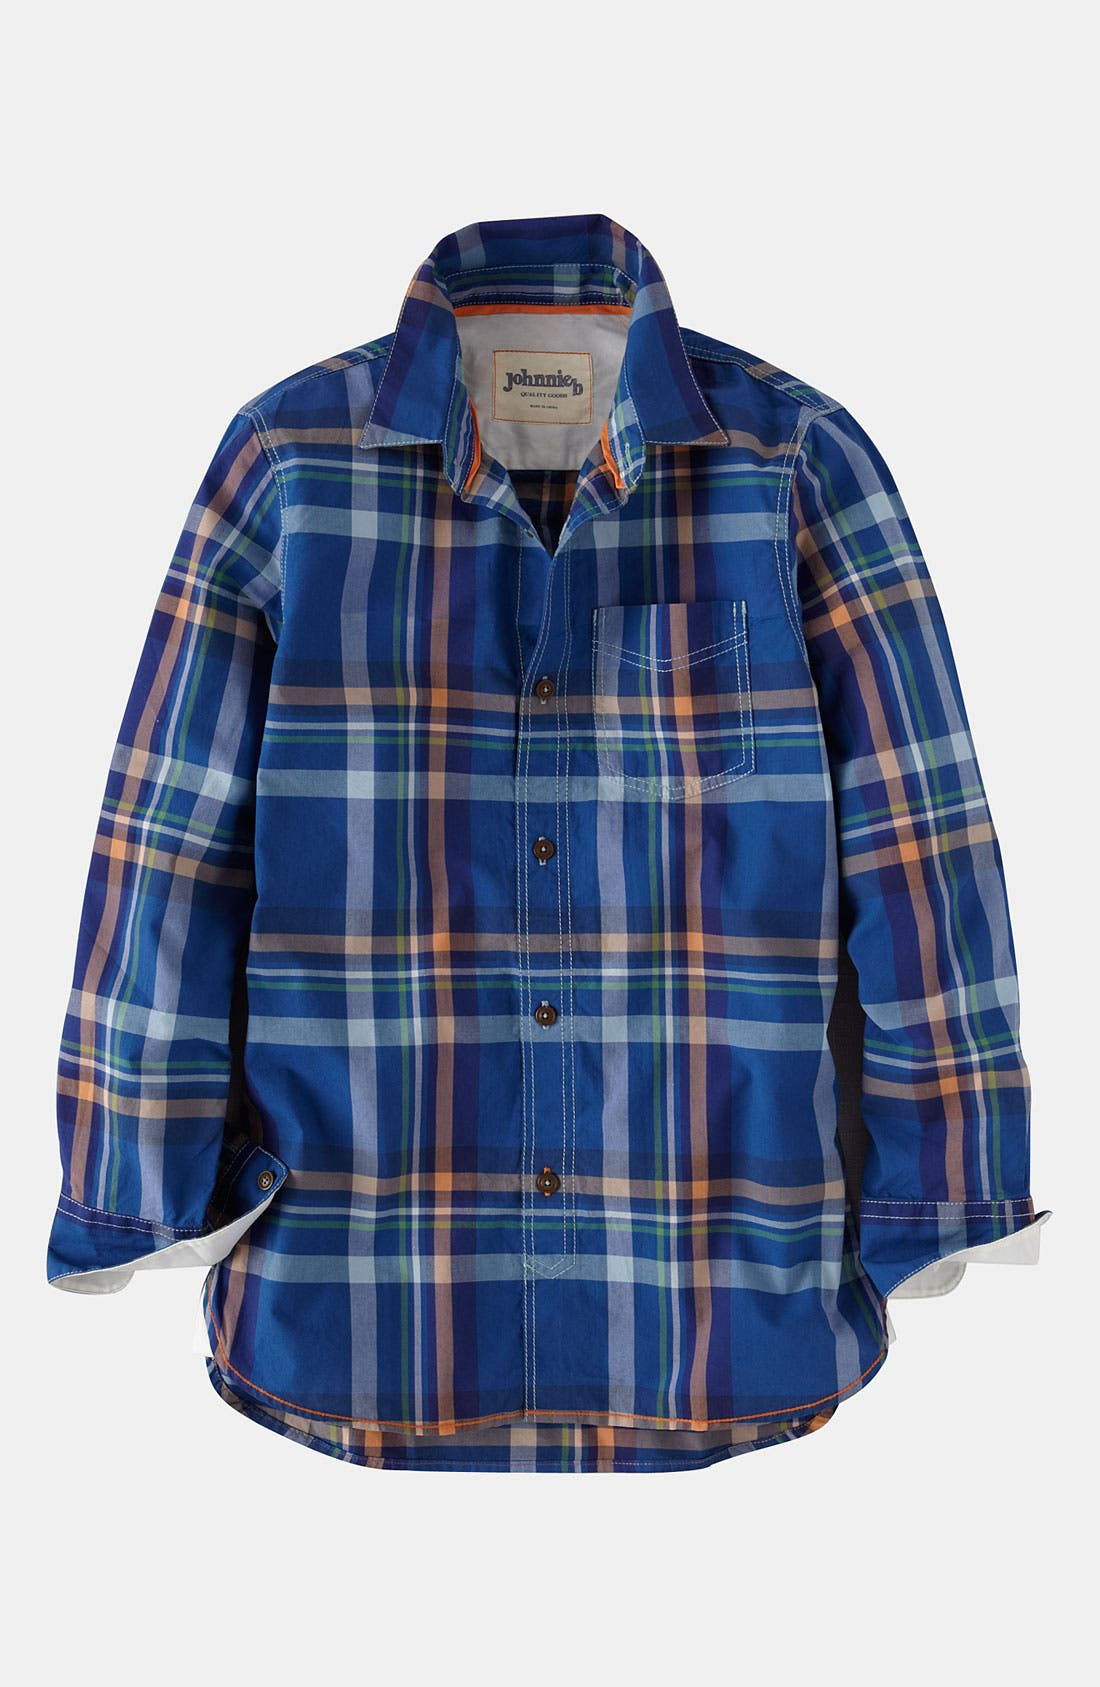 Alternate Image 1 Selected - Johnnie b Woven Shirt (Big Boys)